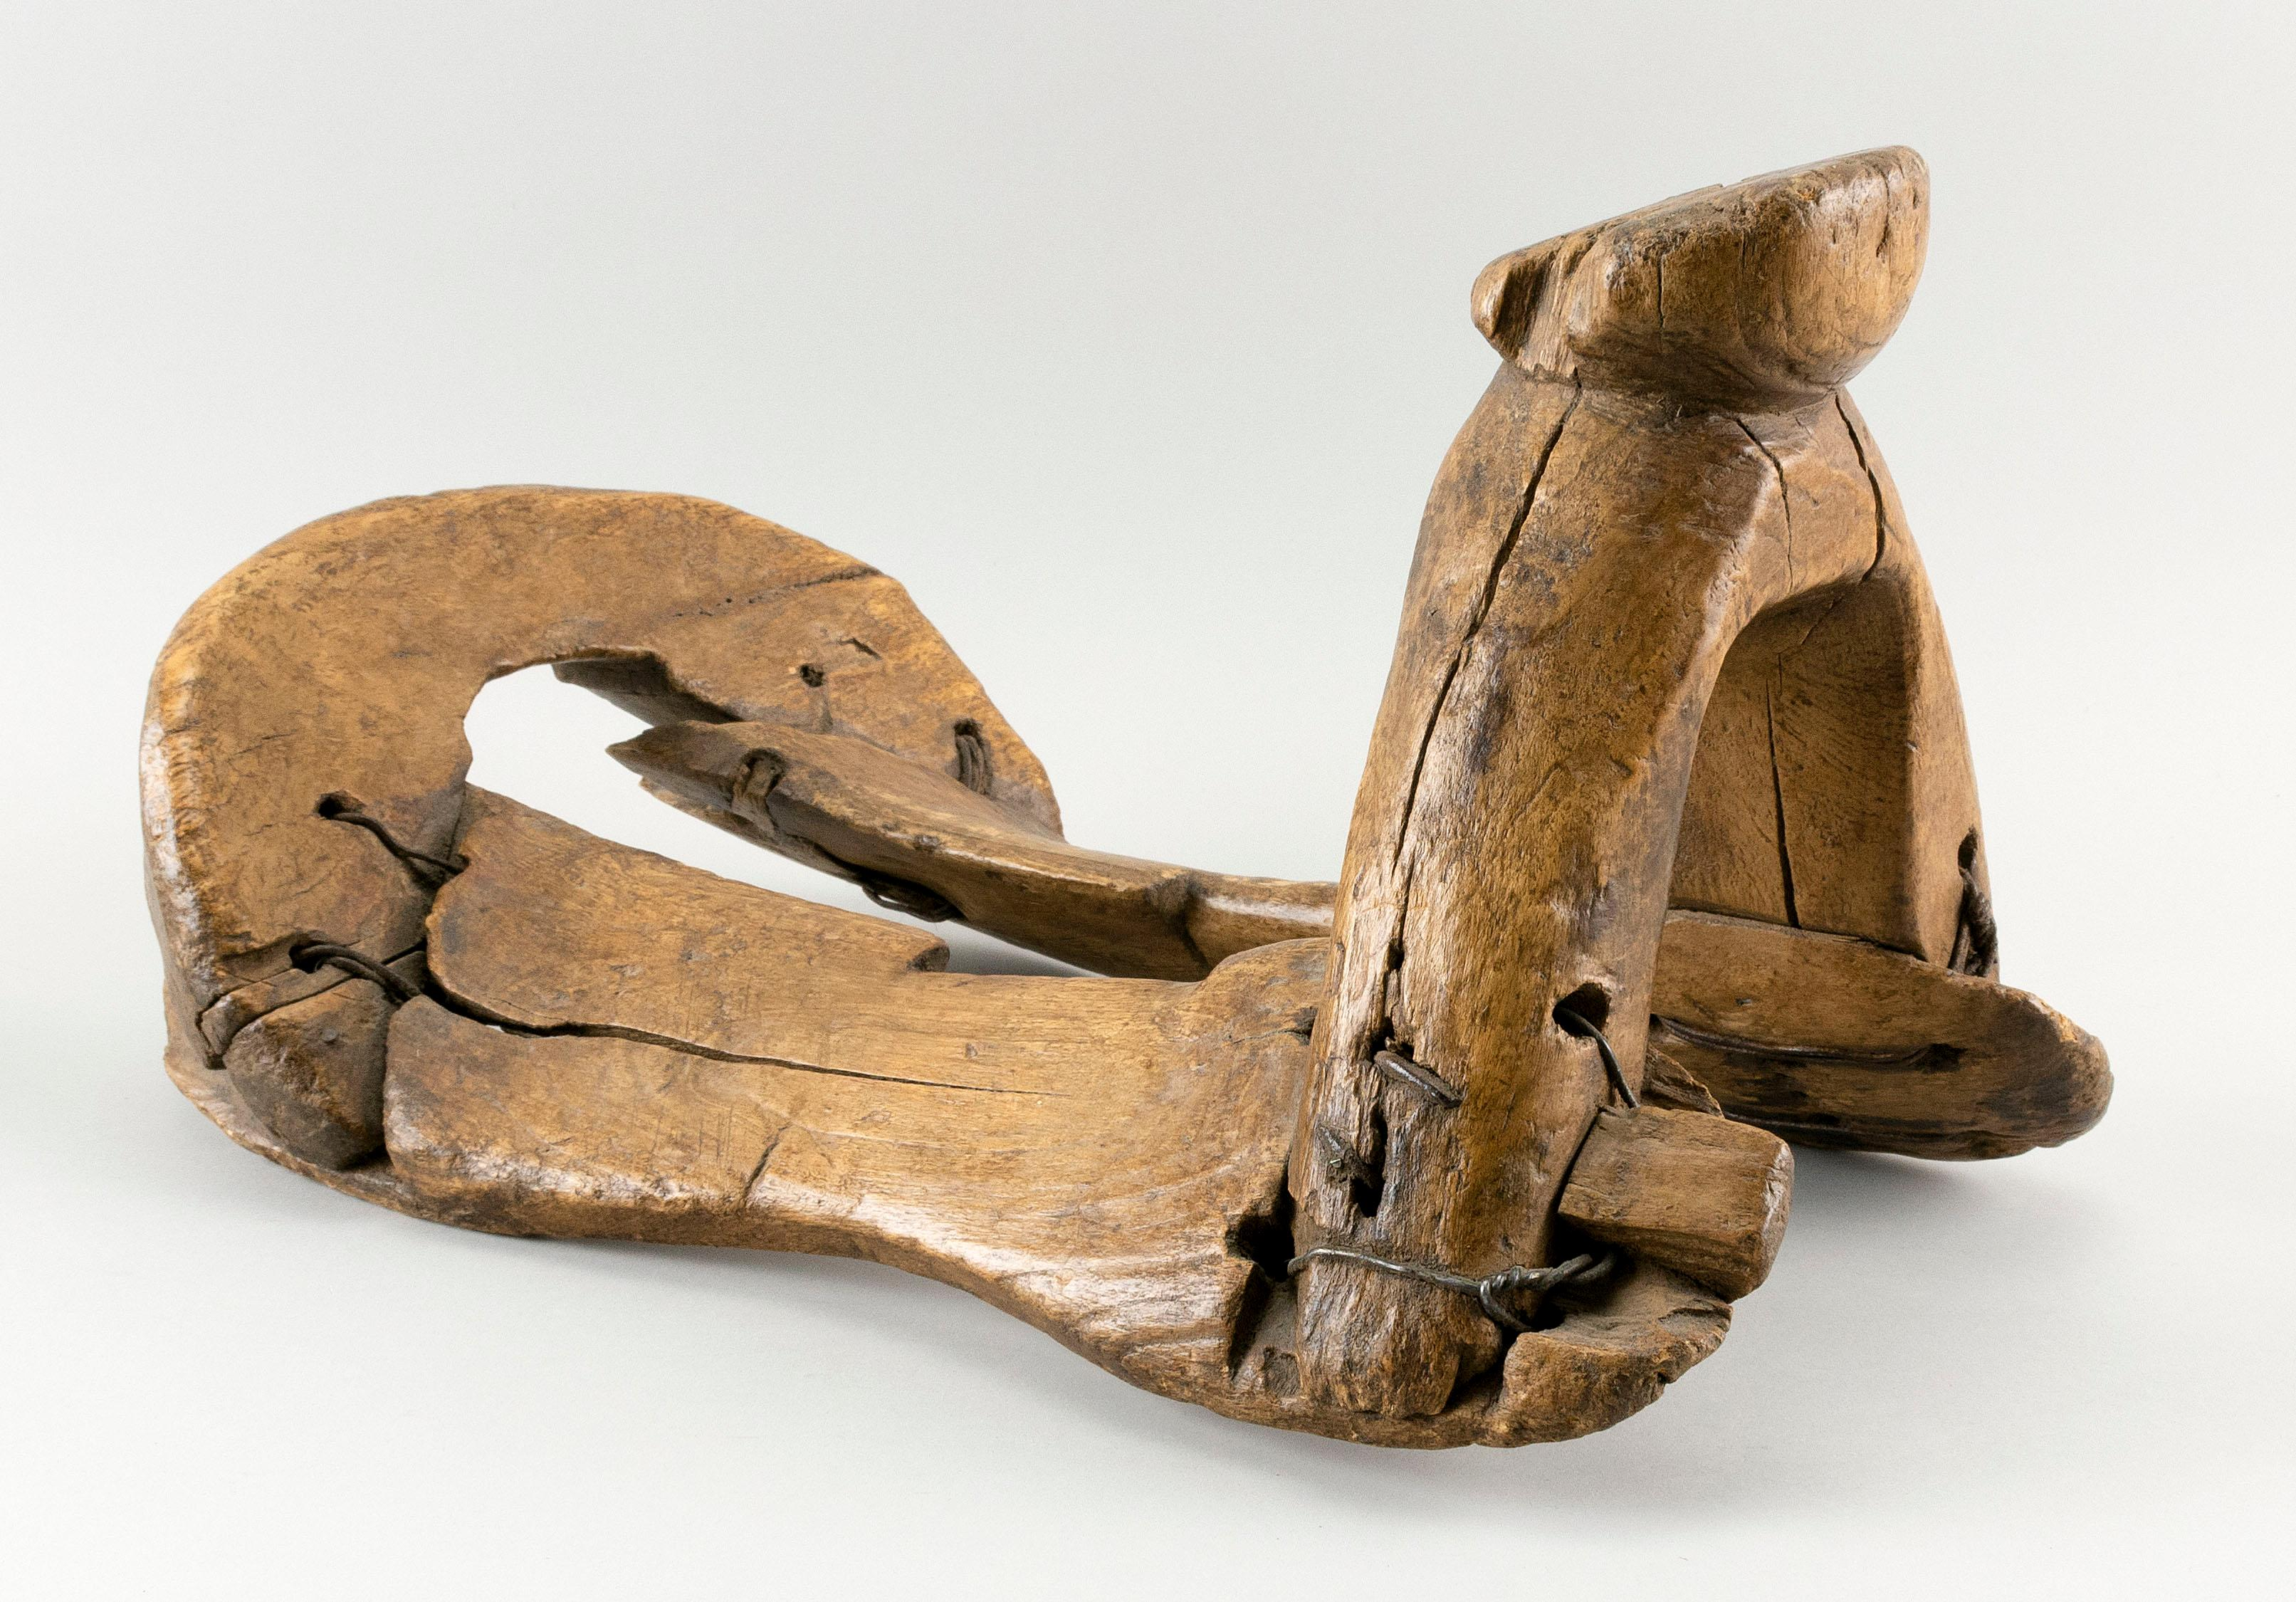 """CHINESE WOODEN SADDLE With iron bindings. Height 12"""". Length 18""""."""